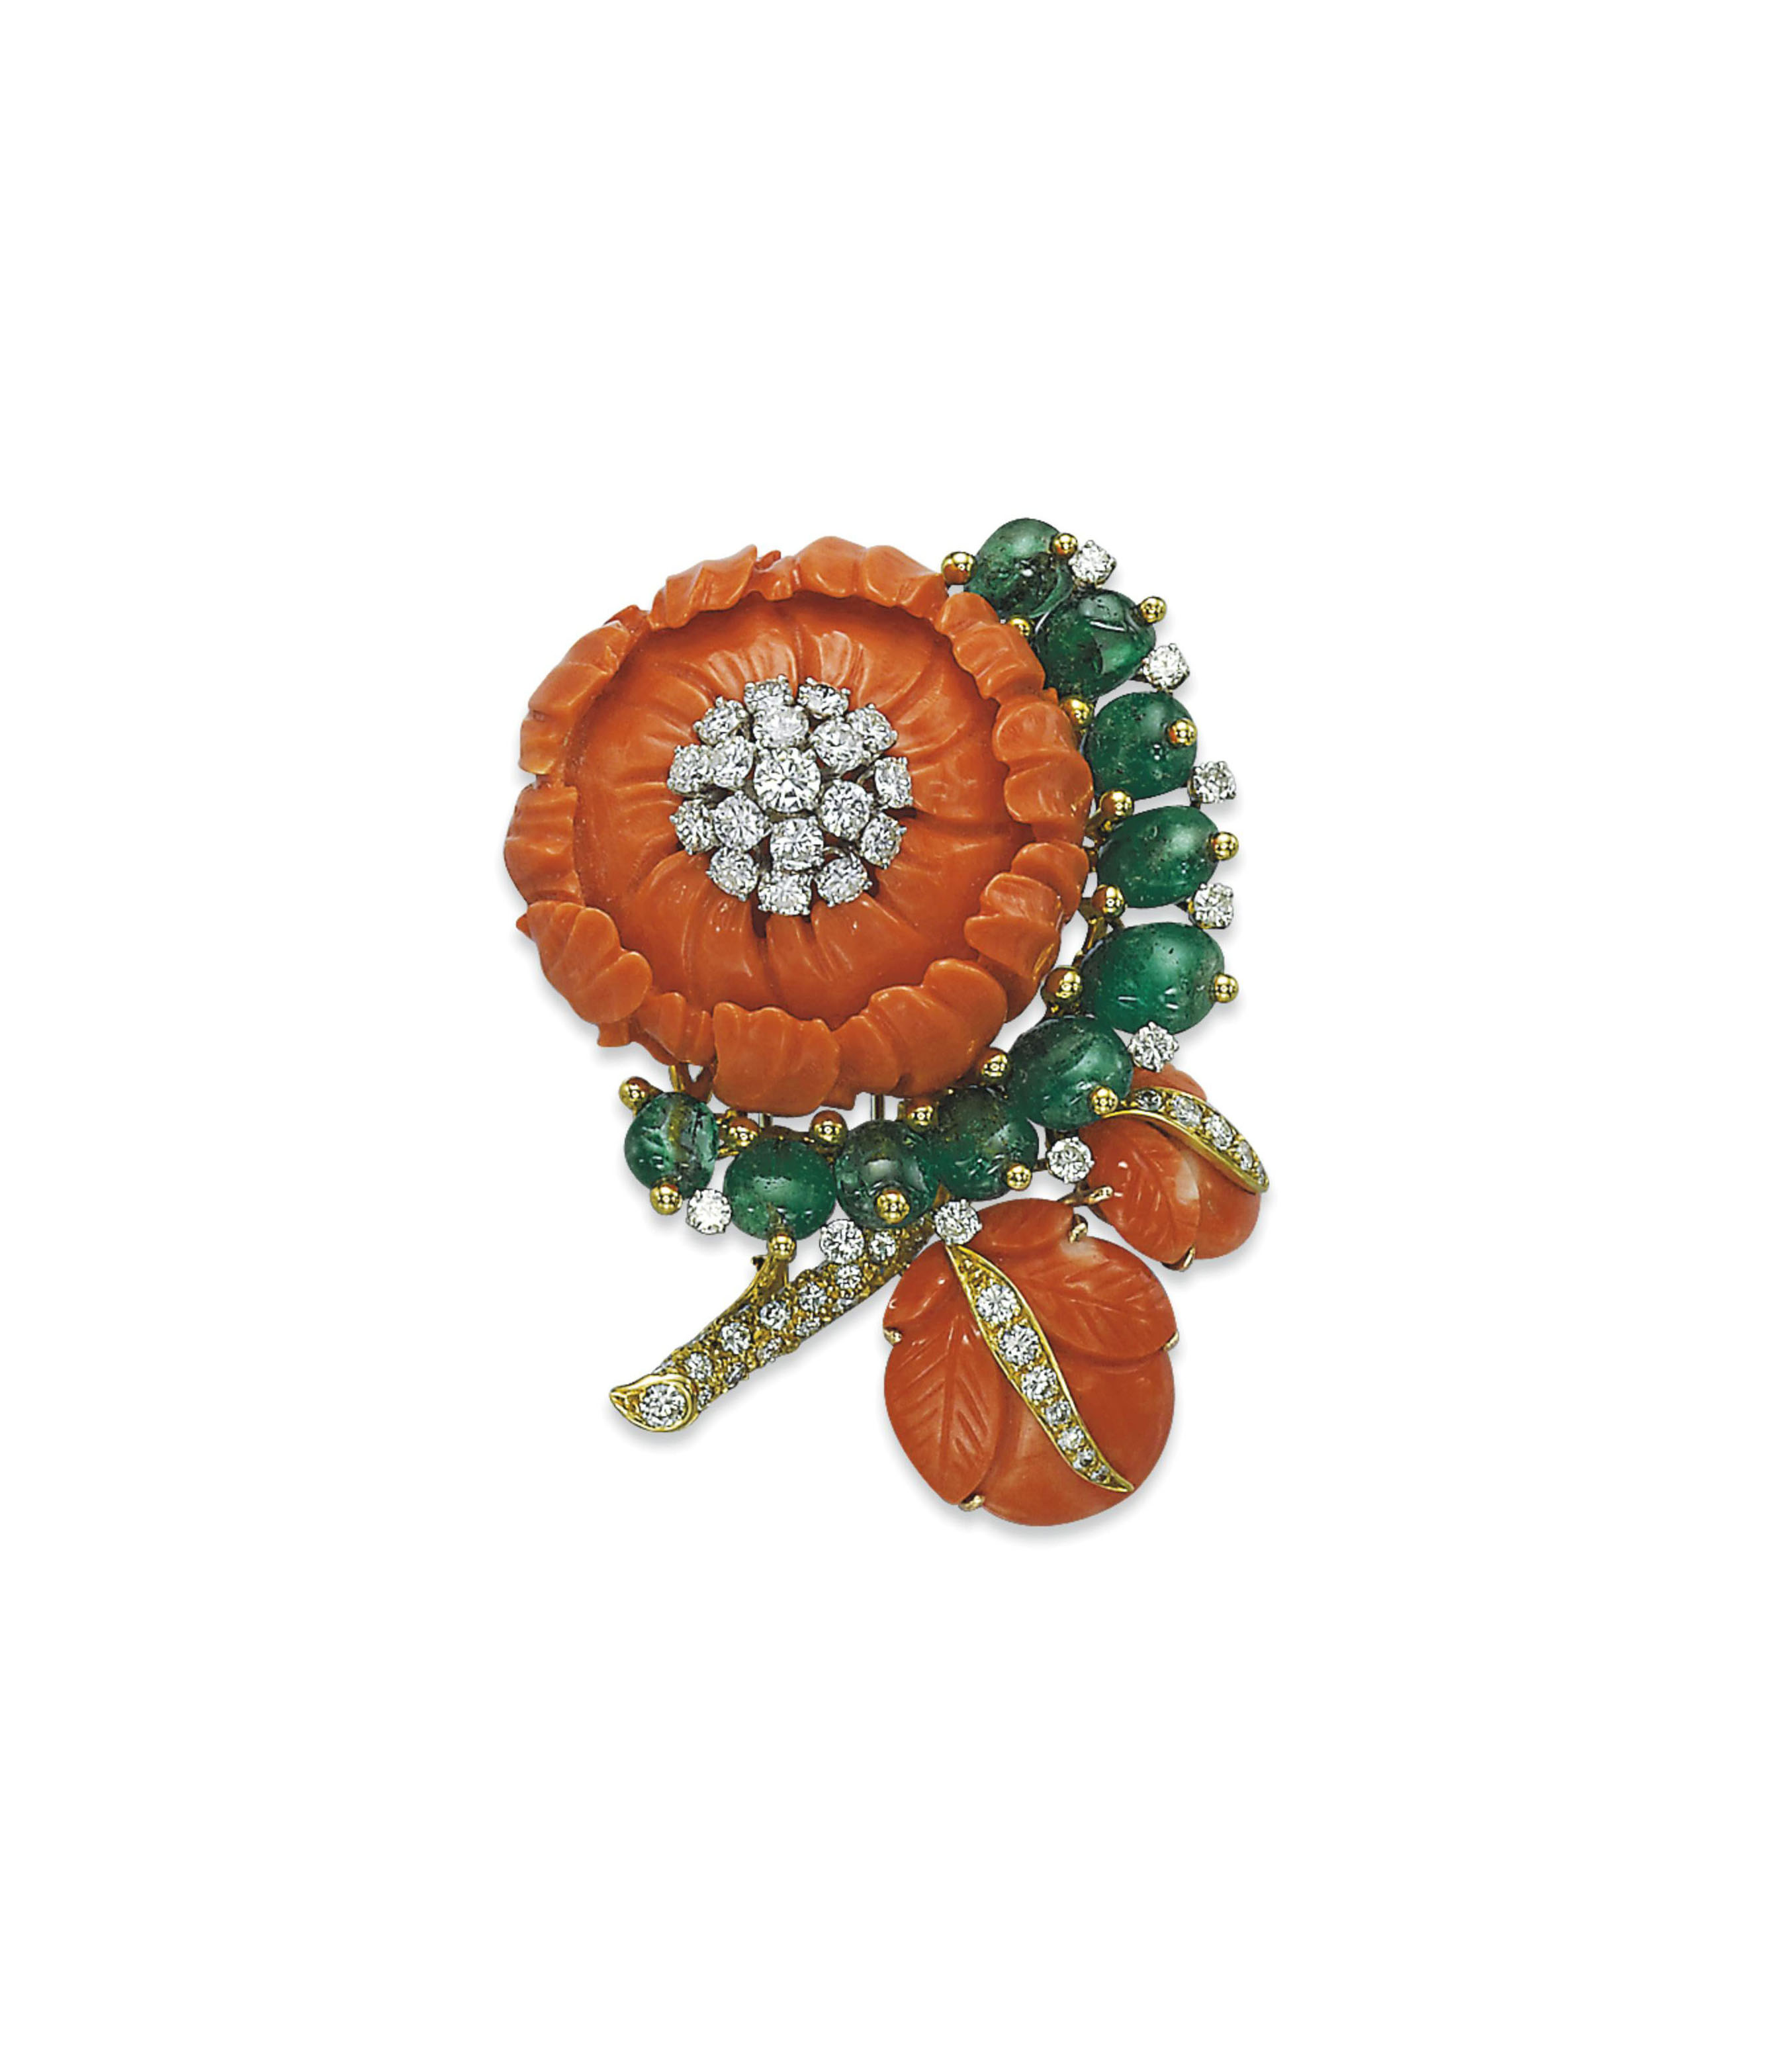 A CORAL, EMERALD AND DIAMOND FLOWER BROOCH, BY DAVID WEBB